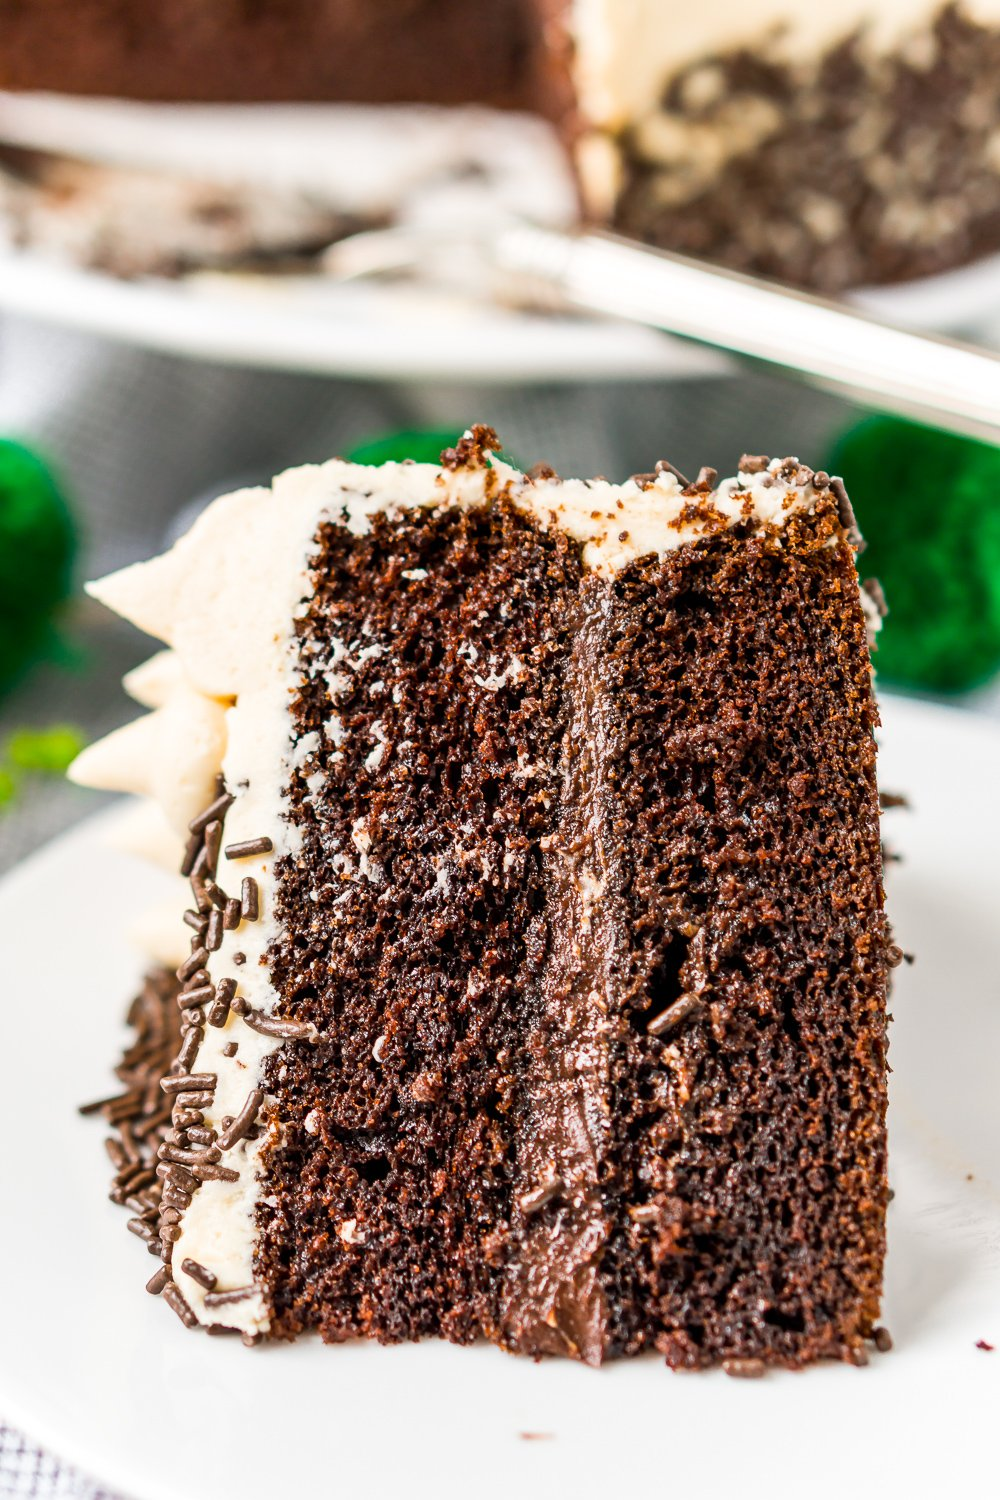 Close up photo of a slice of Chocolate Guinness Cake on a white plate.